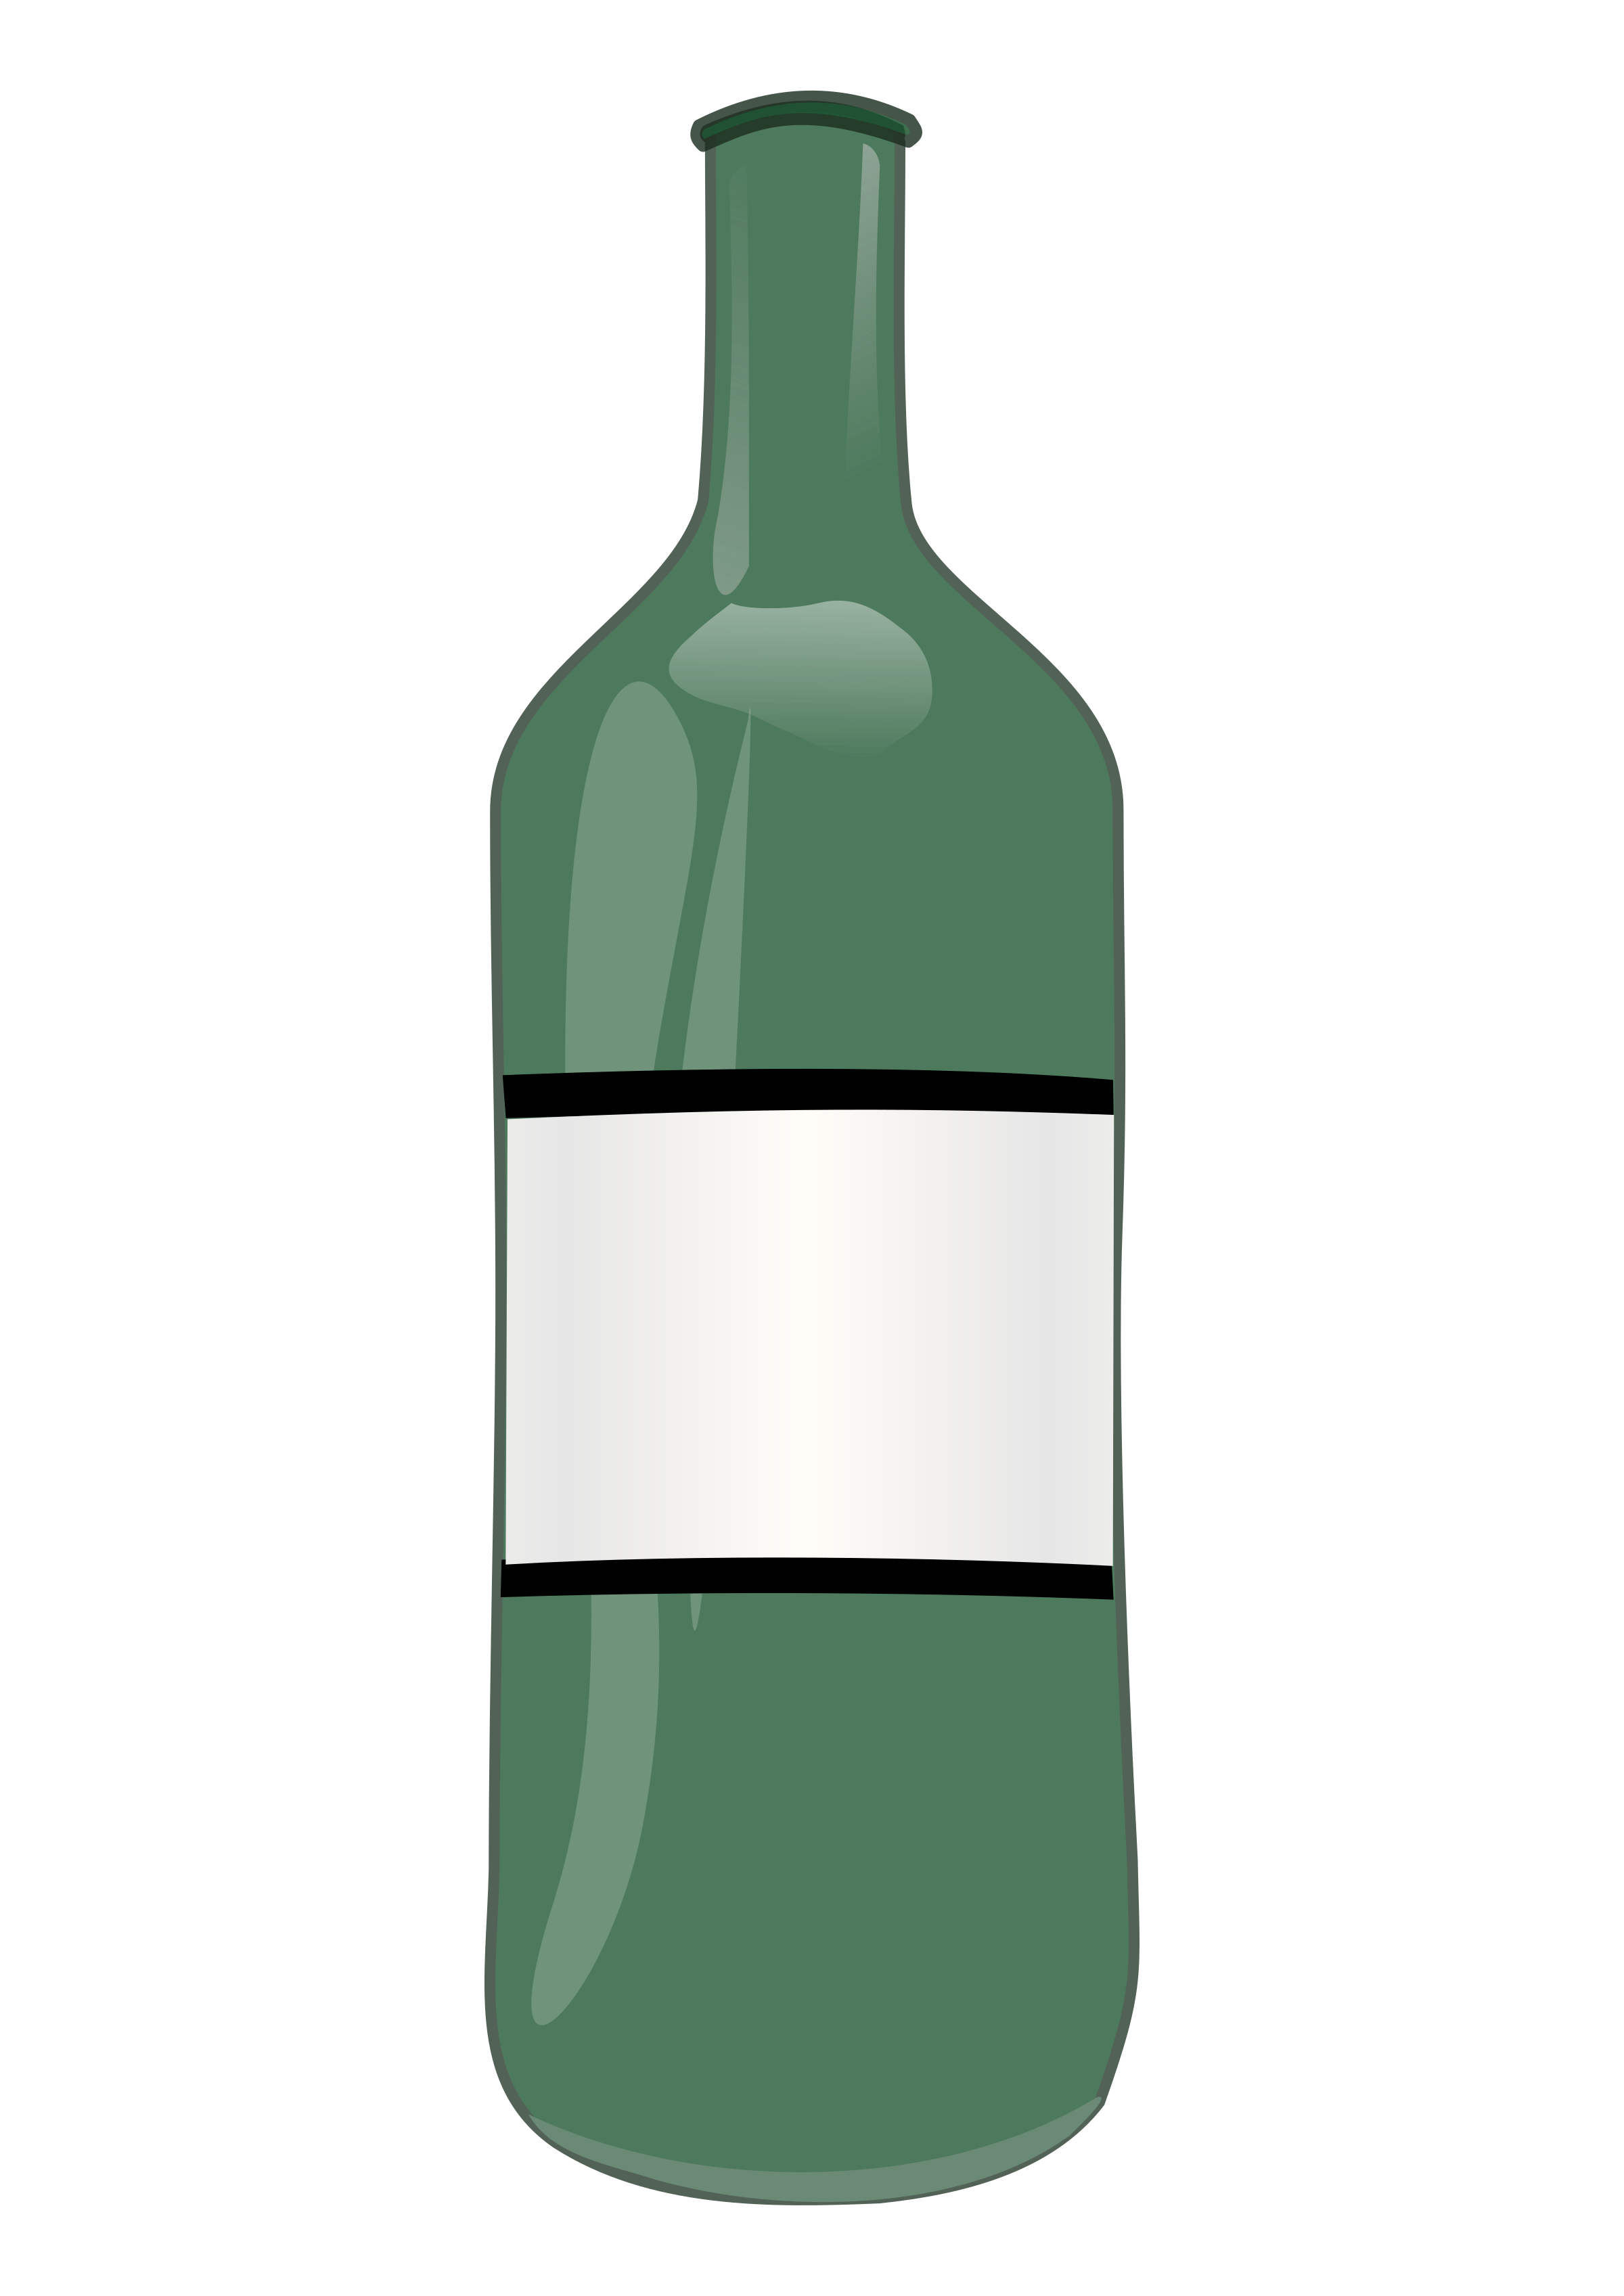 Alcohol bottle cartoon png. Clipart wine